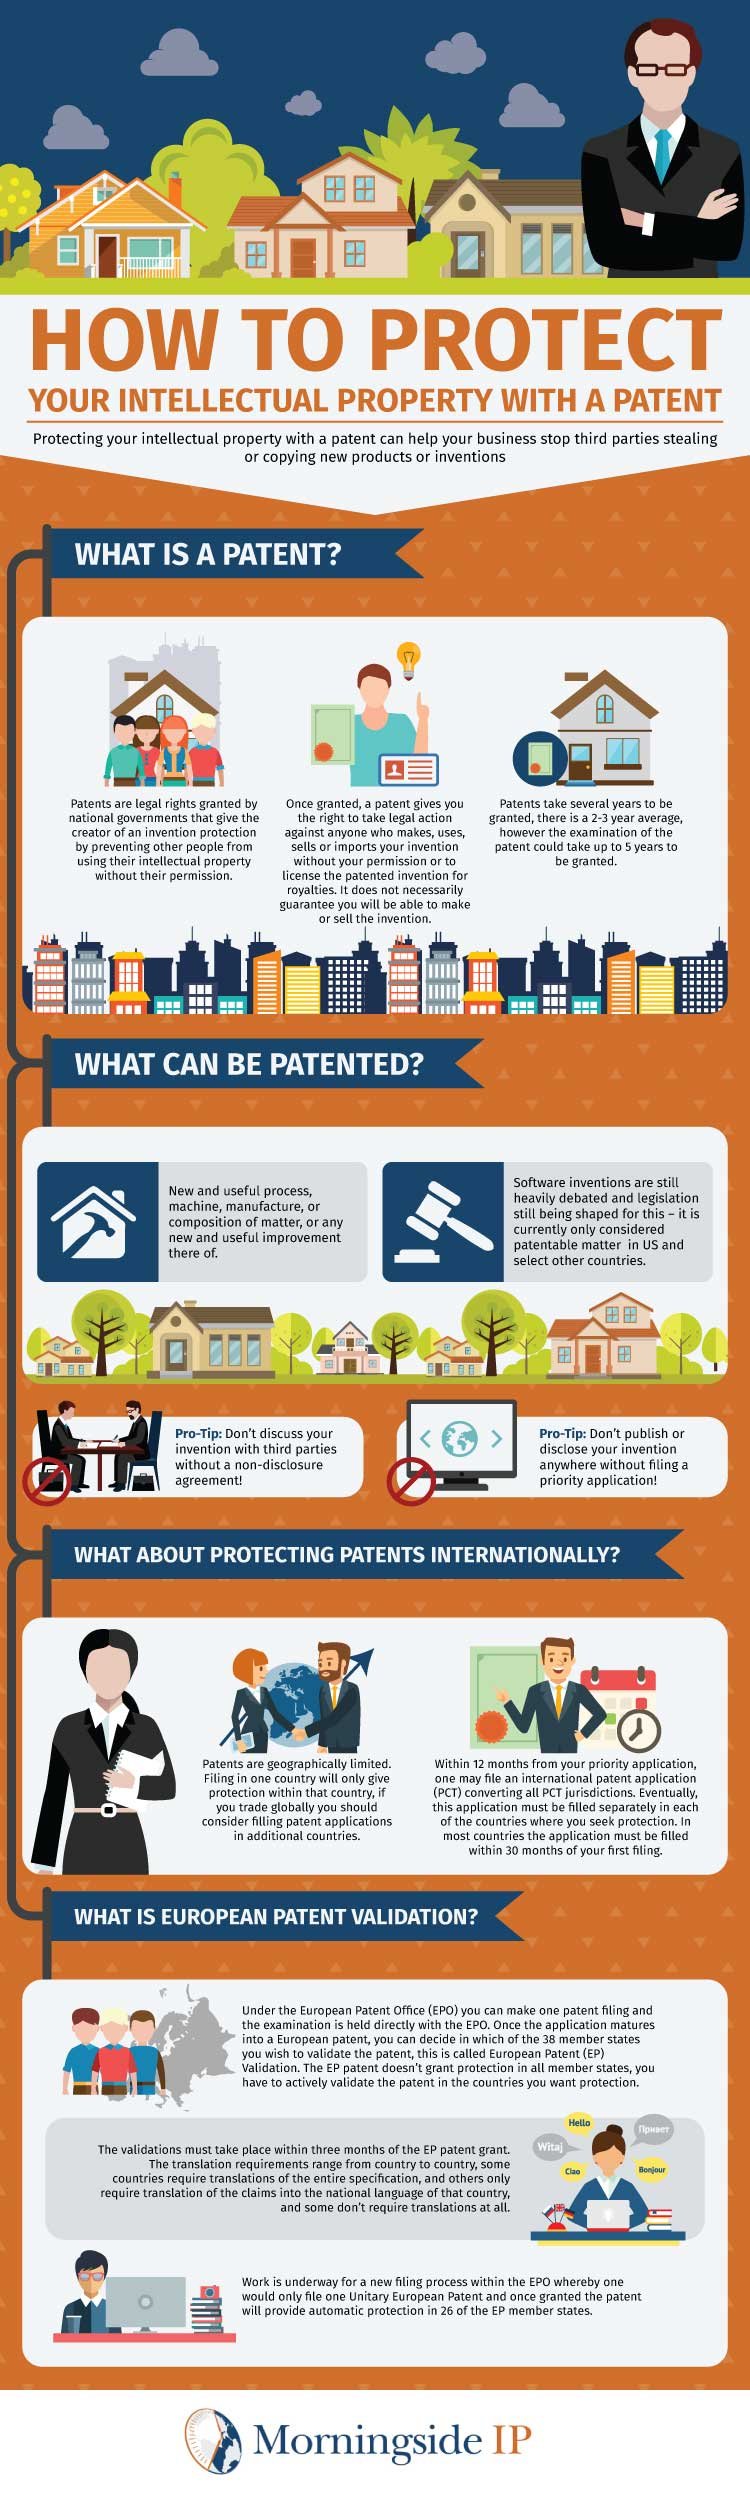 infographic guide for protecting your intellectual property with a patent